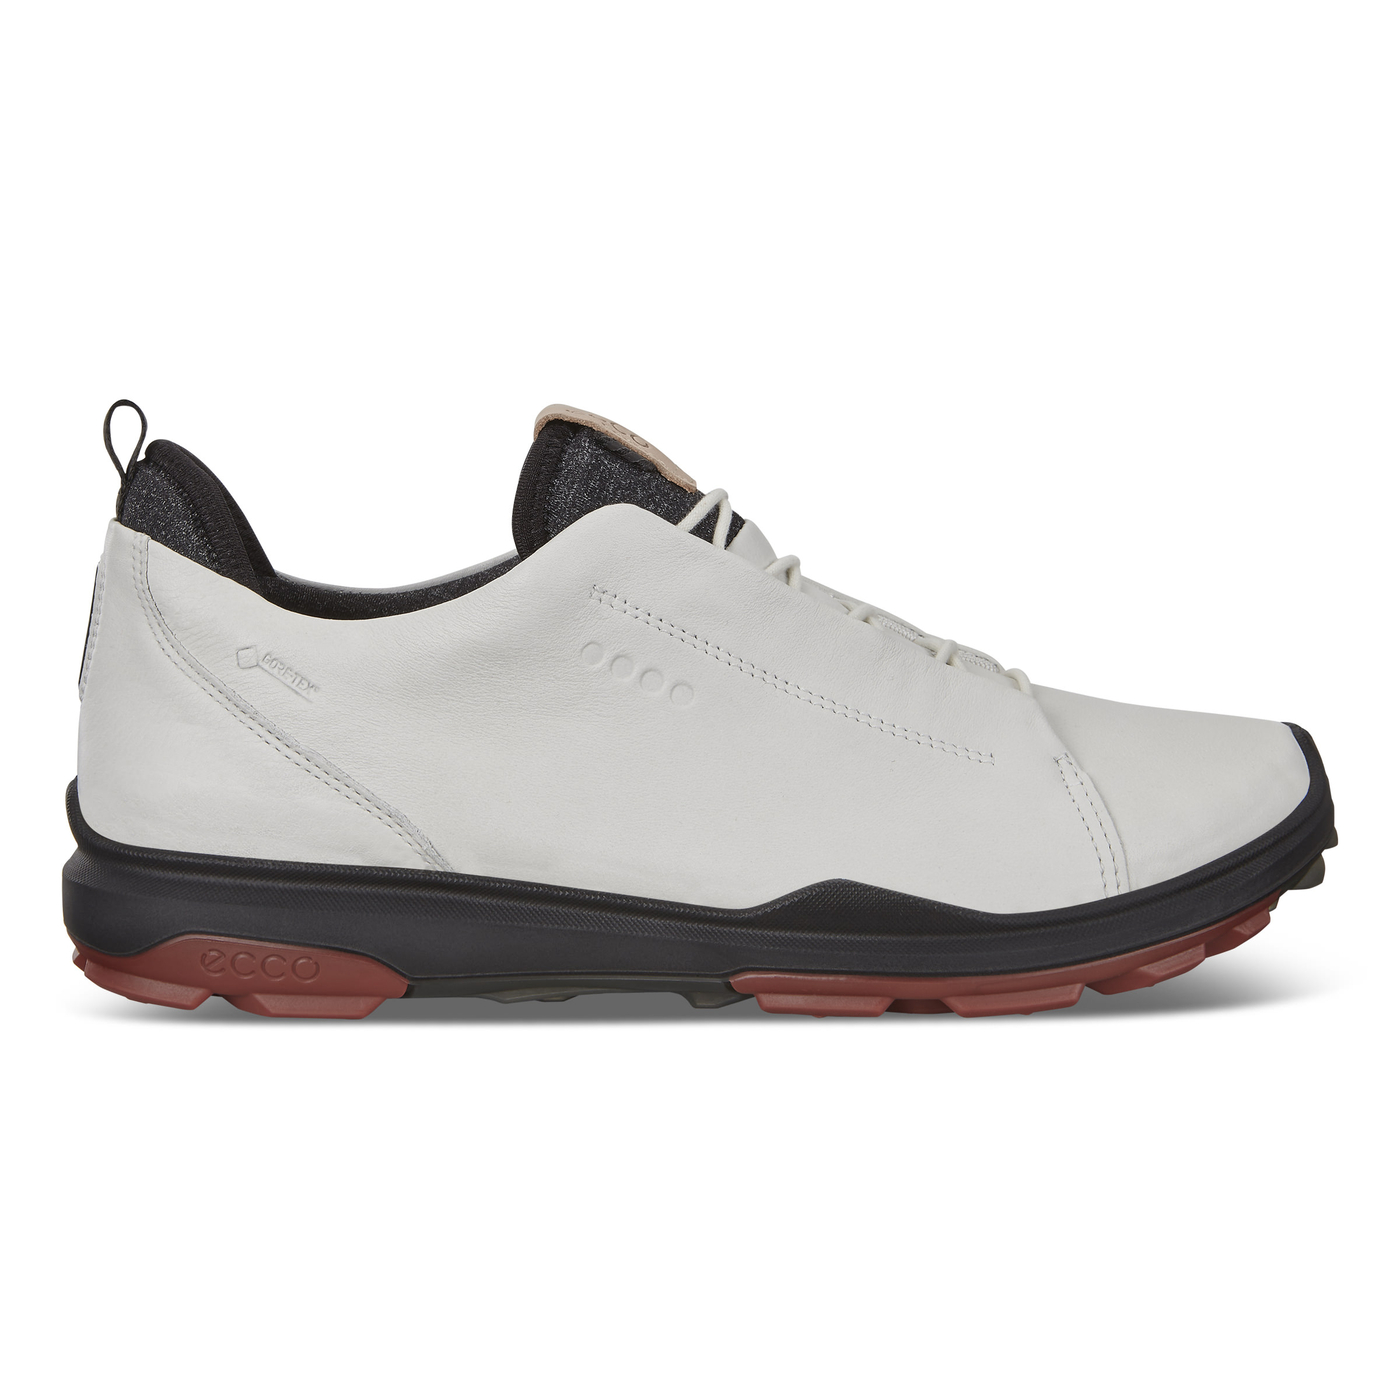 ECCO BIOM HYBRID 3 2.0 Men's Shoe